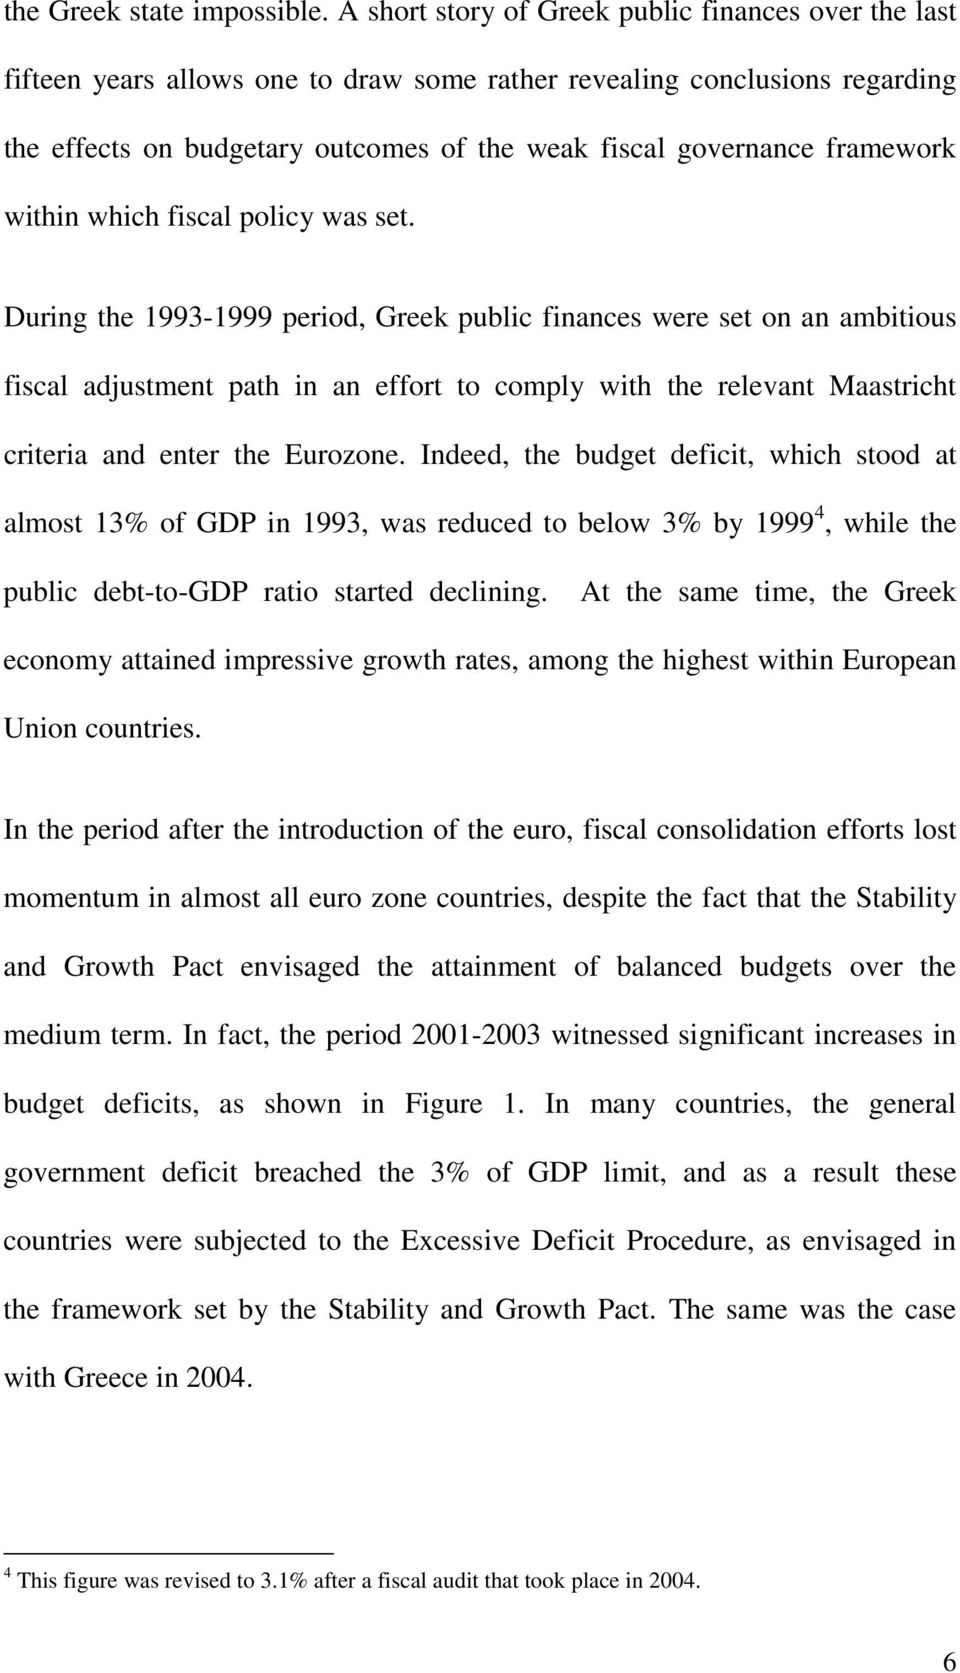 framework within which fiscal policy was set.